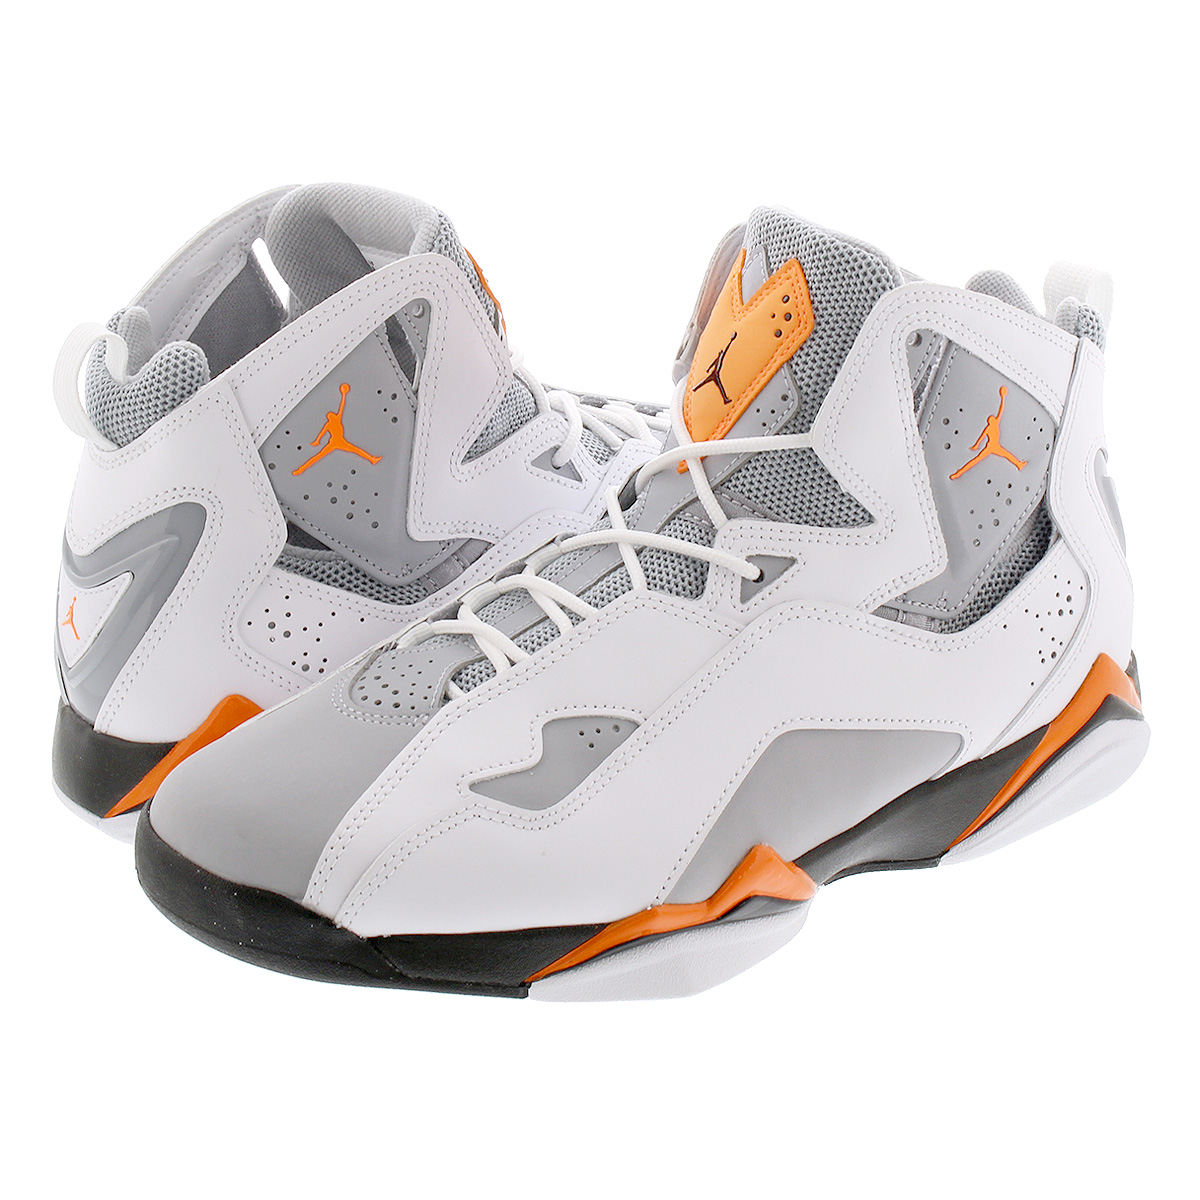 NIKE JORDAN TRUE FLIGHT ナイキ ジョーダン トゥルー フライト WHITE/TOTAL ORANGE/WOLF GREY 342964-118